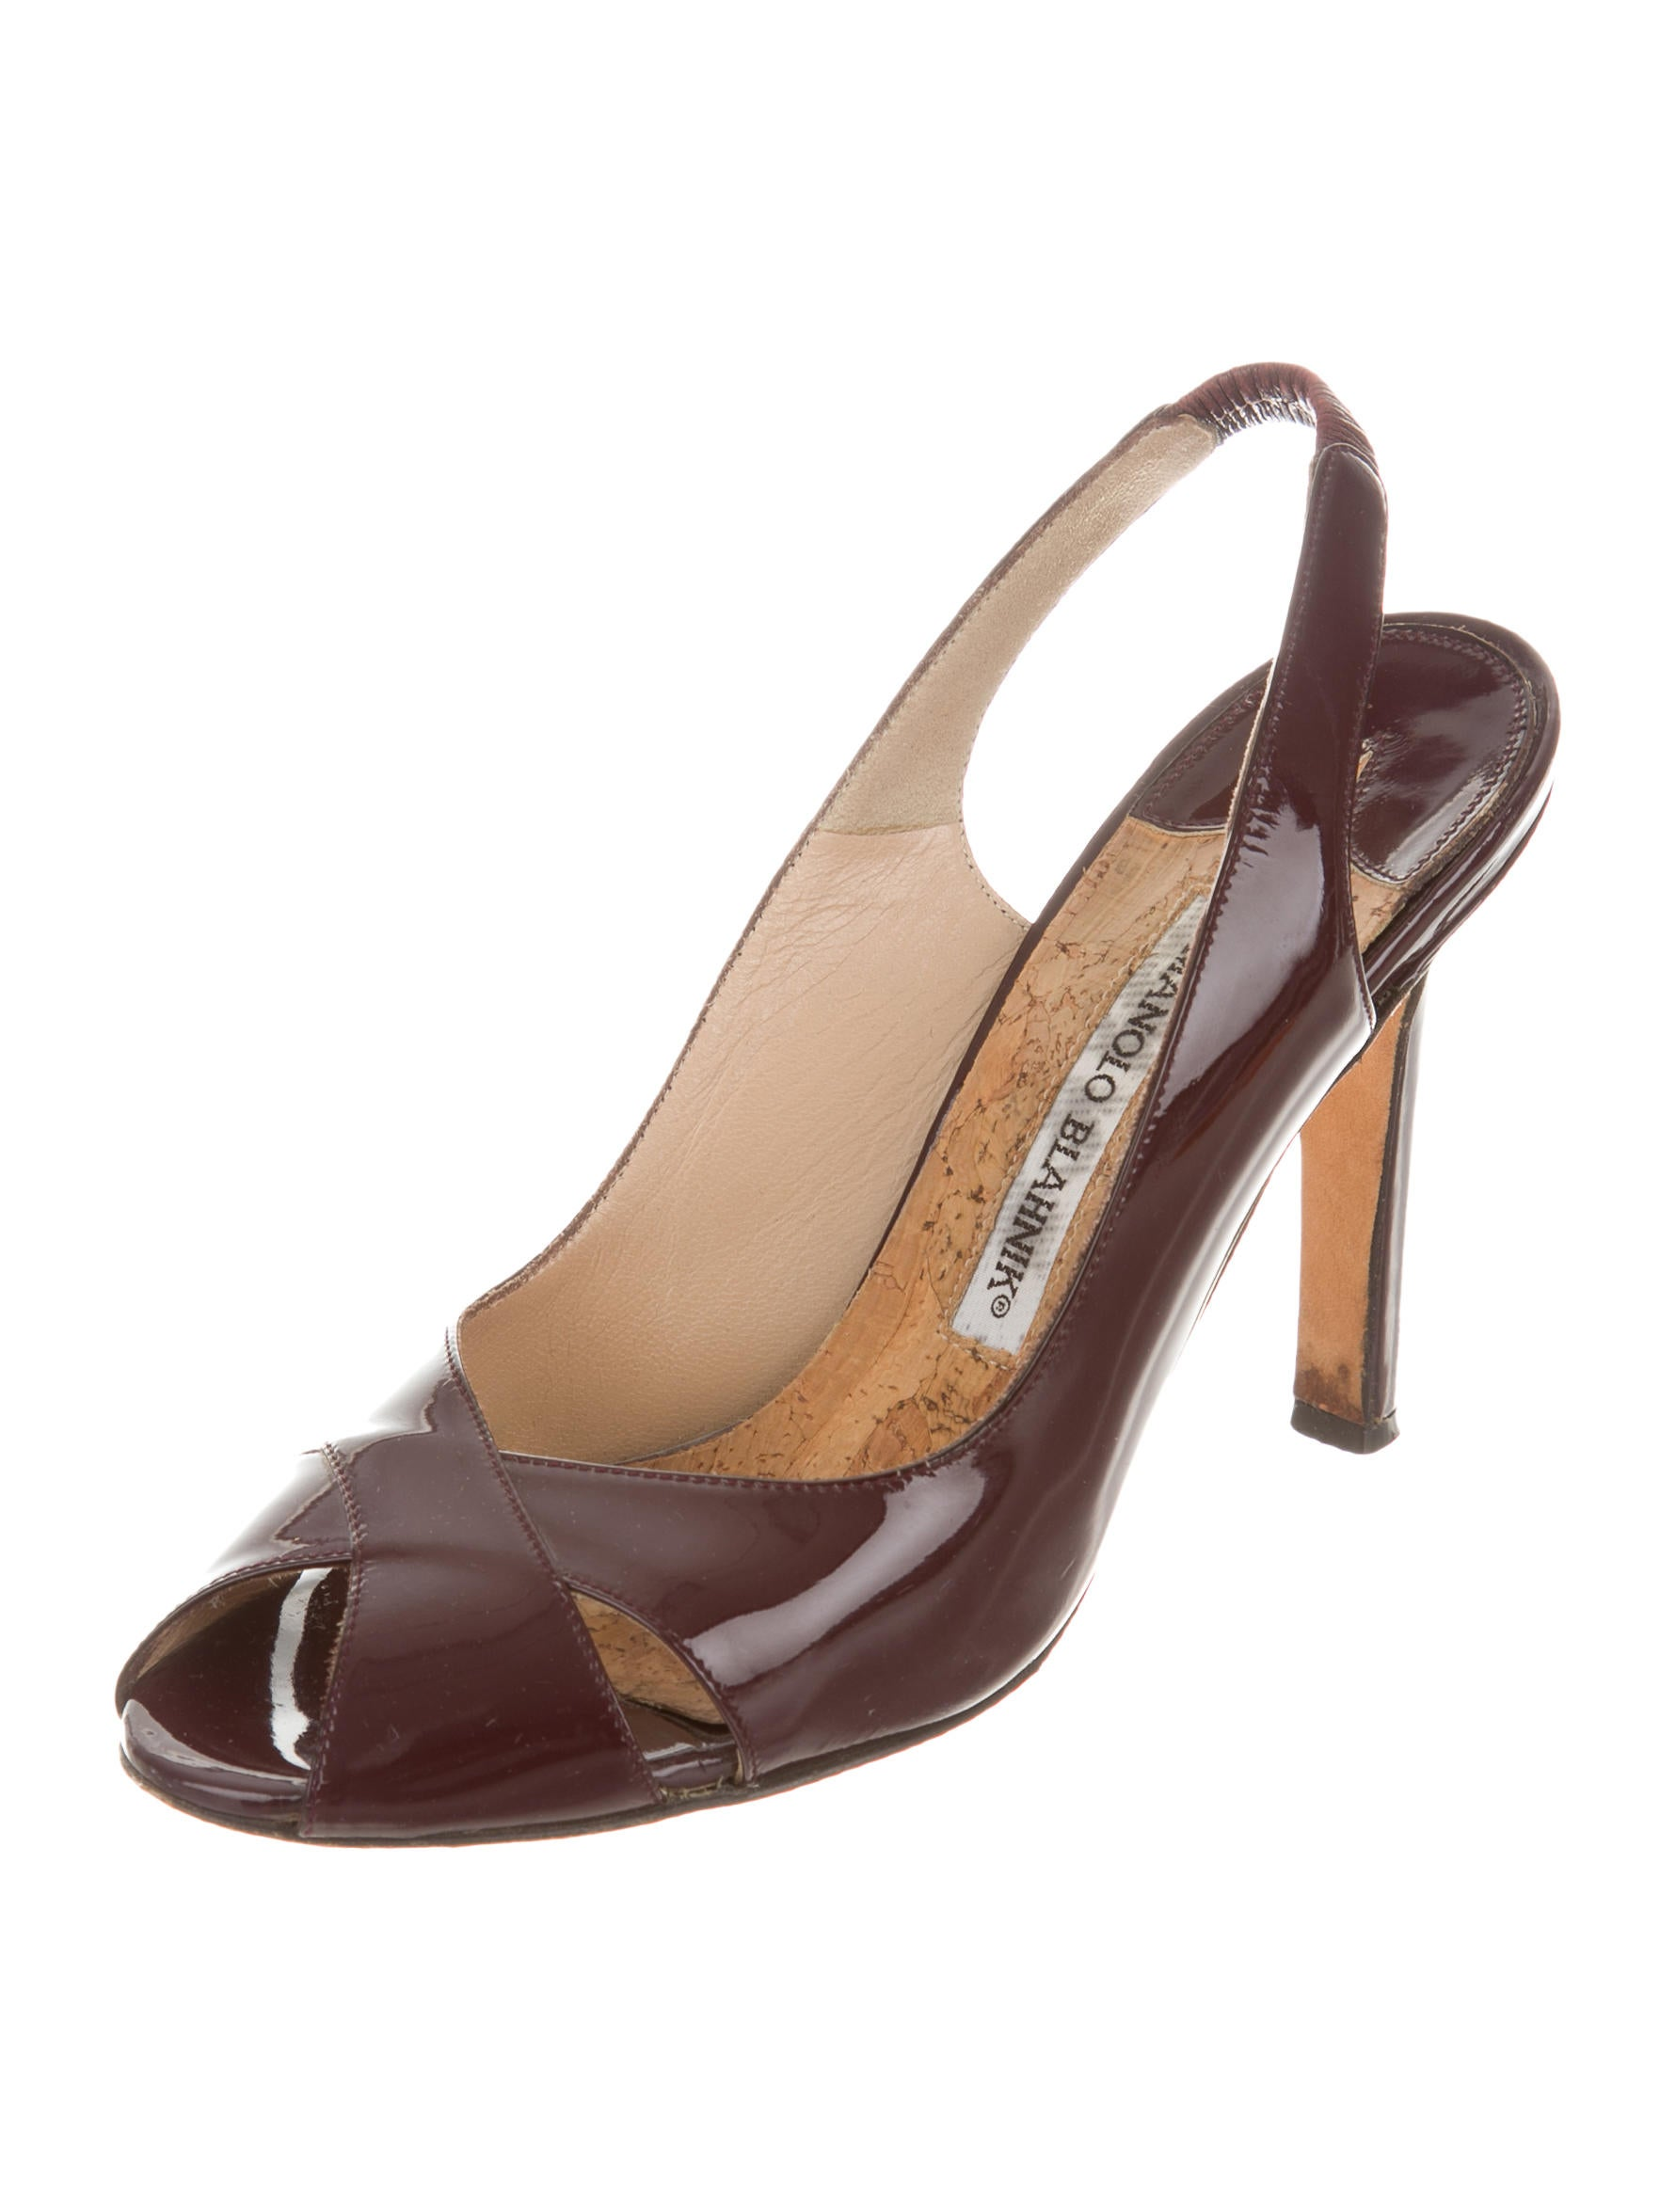 Manolo blahnik patent slingback sandals shoes moo55246 for Shoes by manolo blahnik